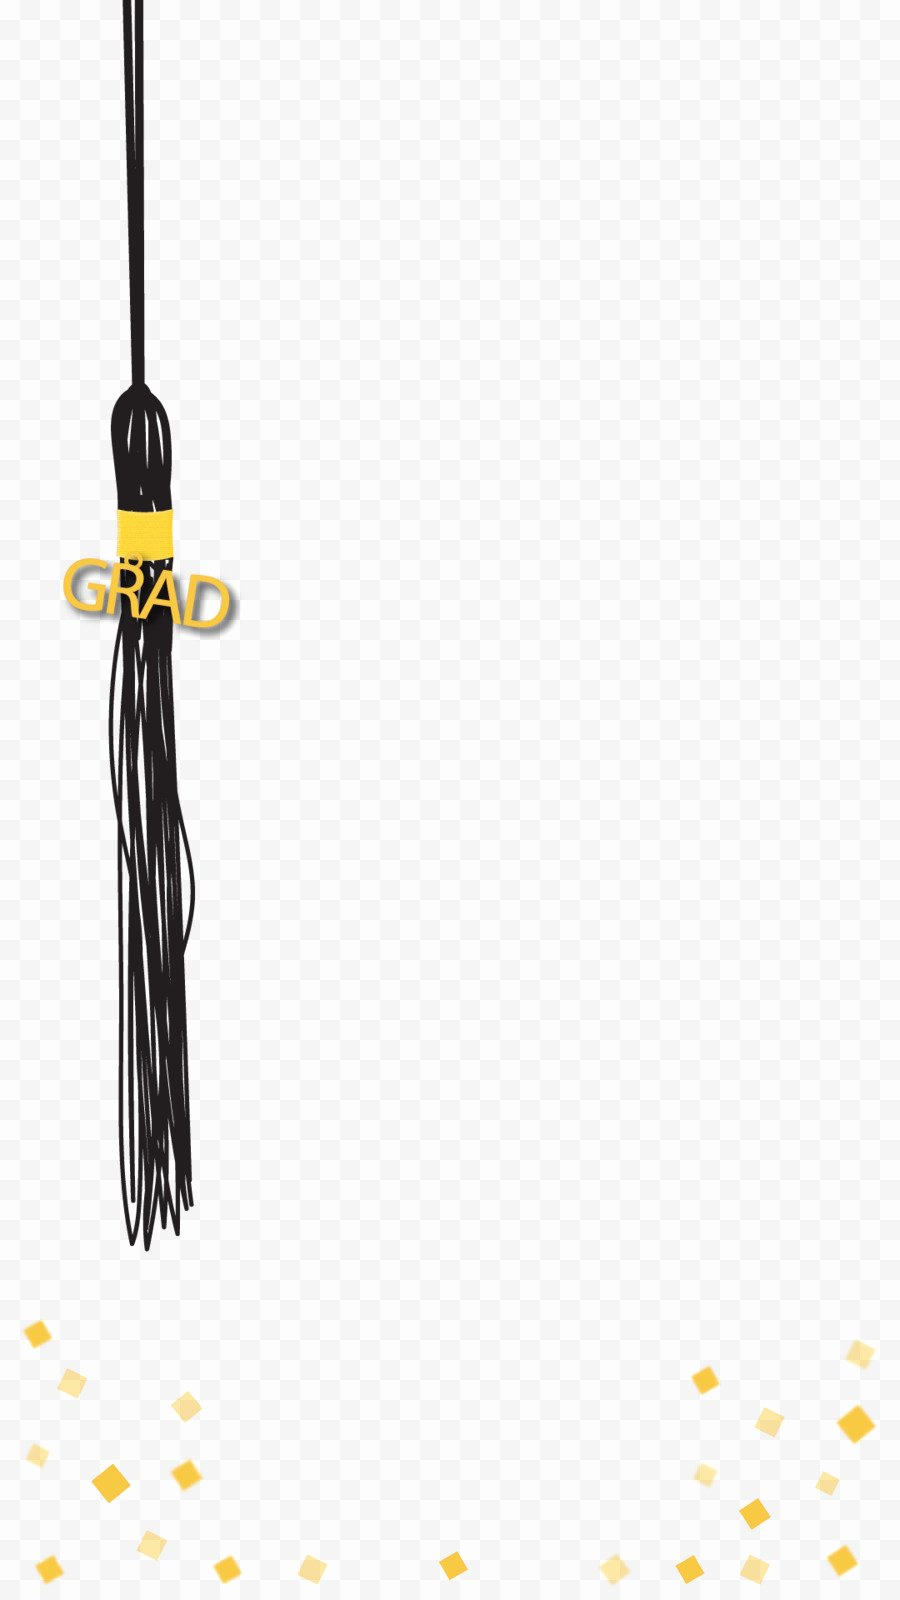 Geofilter Template Free Luxury Graduation Ceremony Party Wedding Tassel Graduation Png